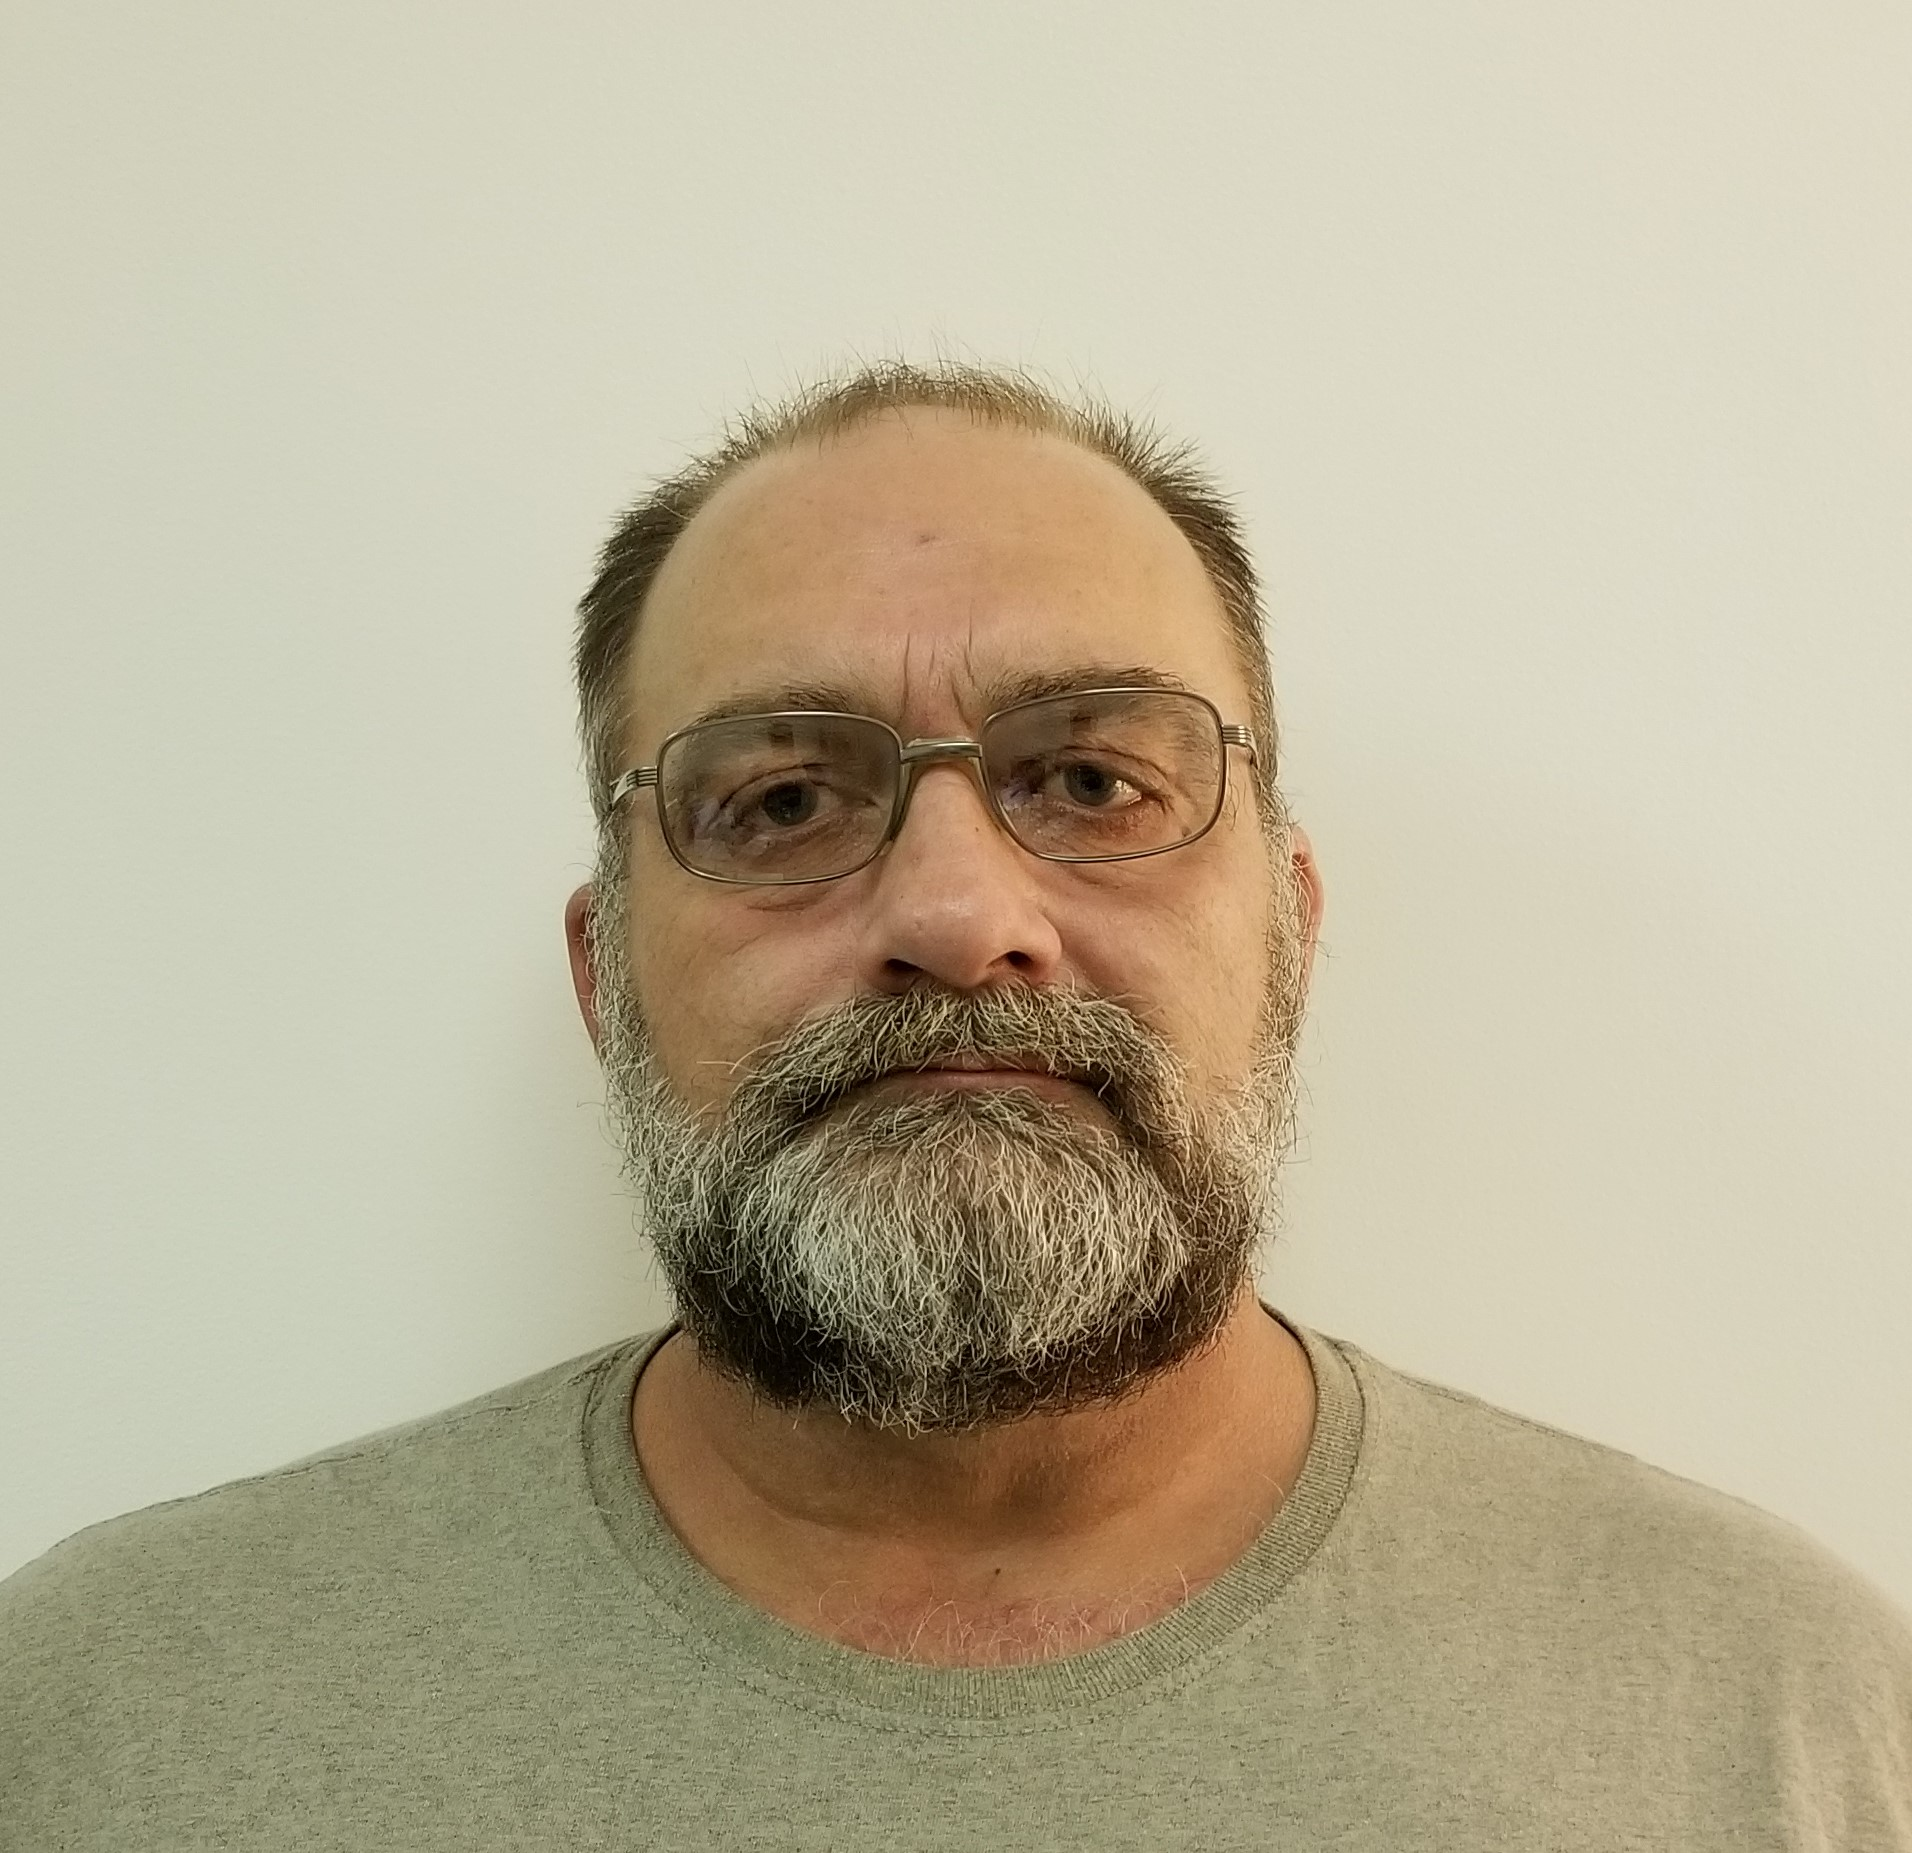 ky sex offenders photos in wi in Lexington